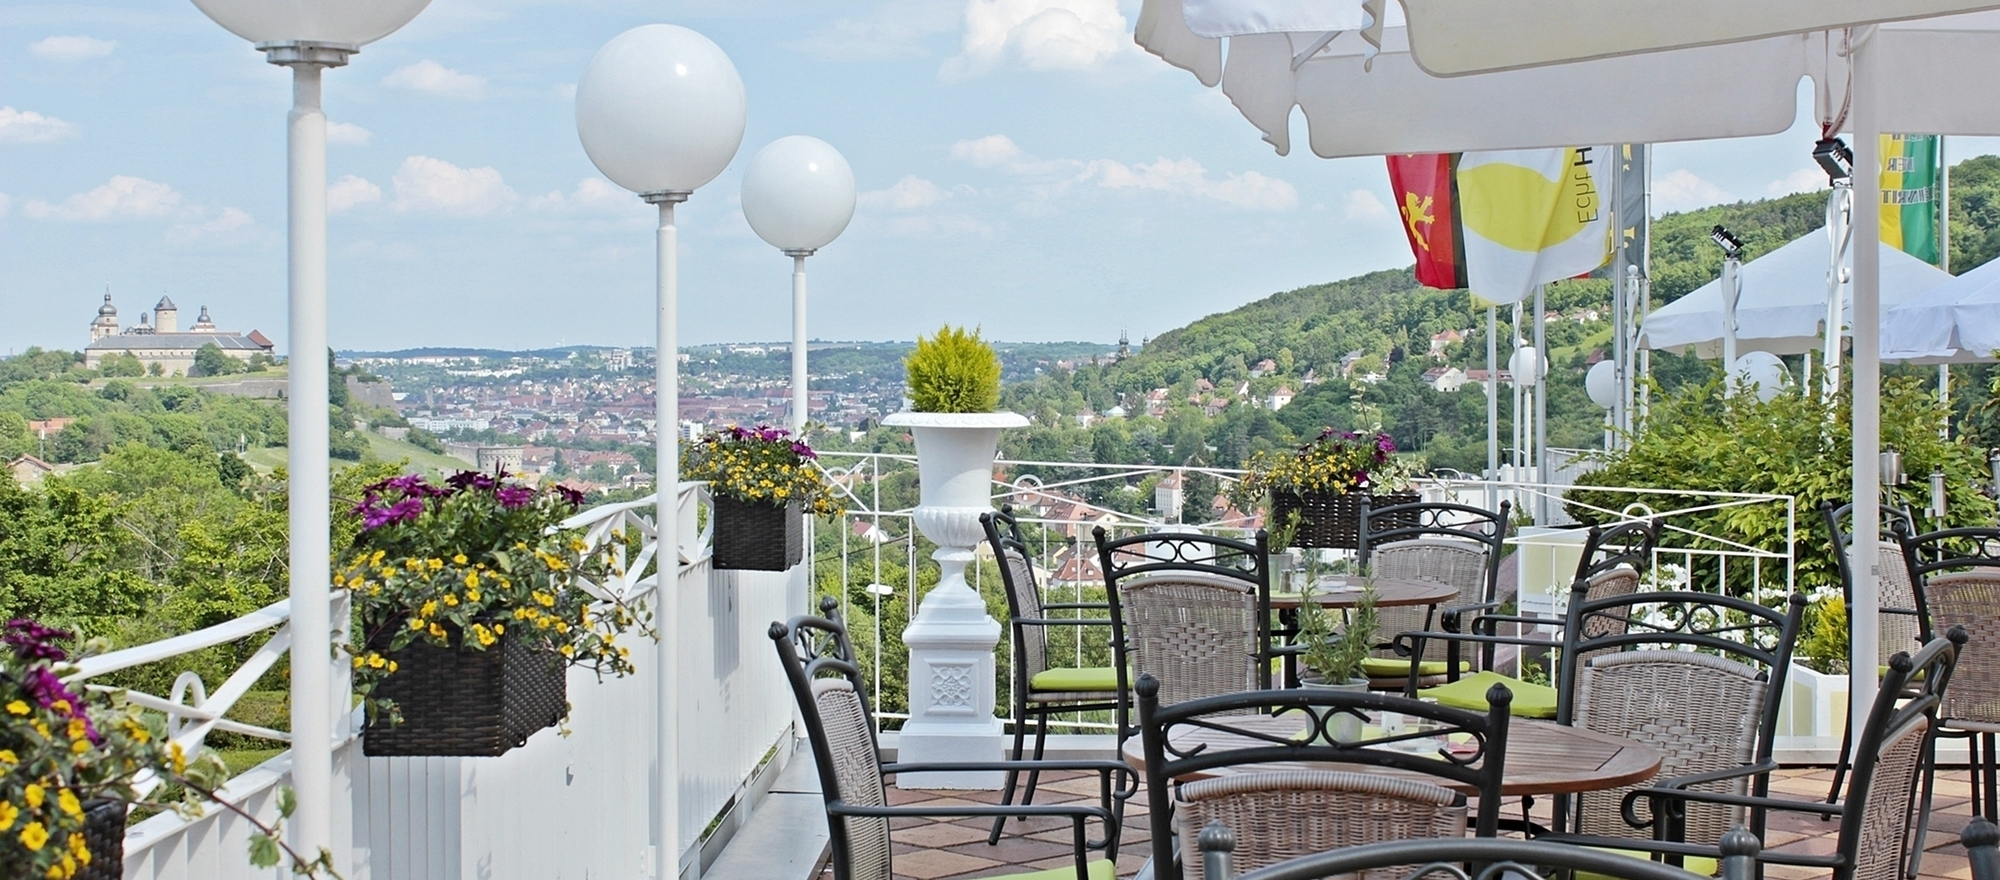 Overlooking Wuerzburg from our sun terrace at the 3-star-superior hotel Ringhotel Wittelsbacher Hoeh in Wuerzburg